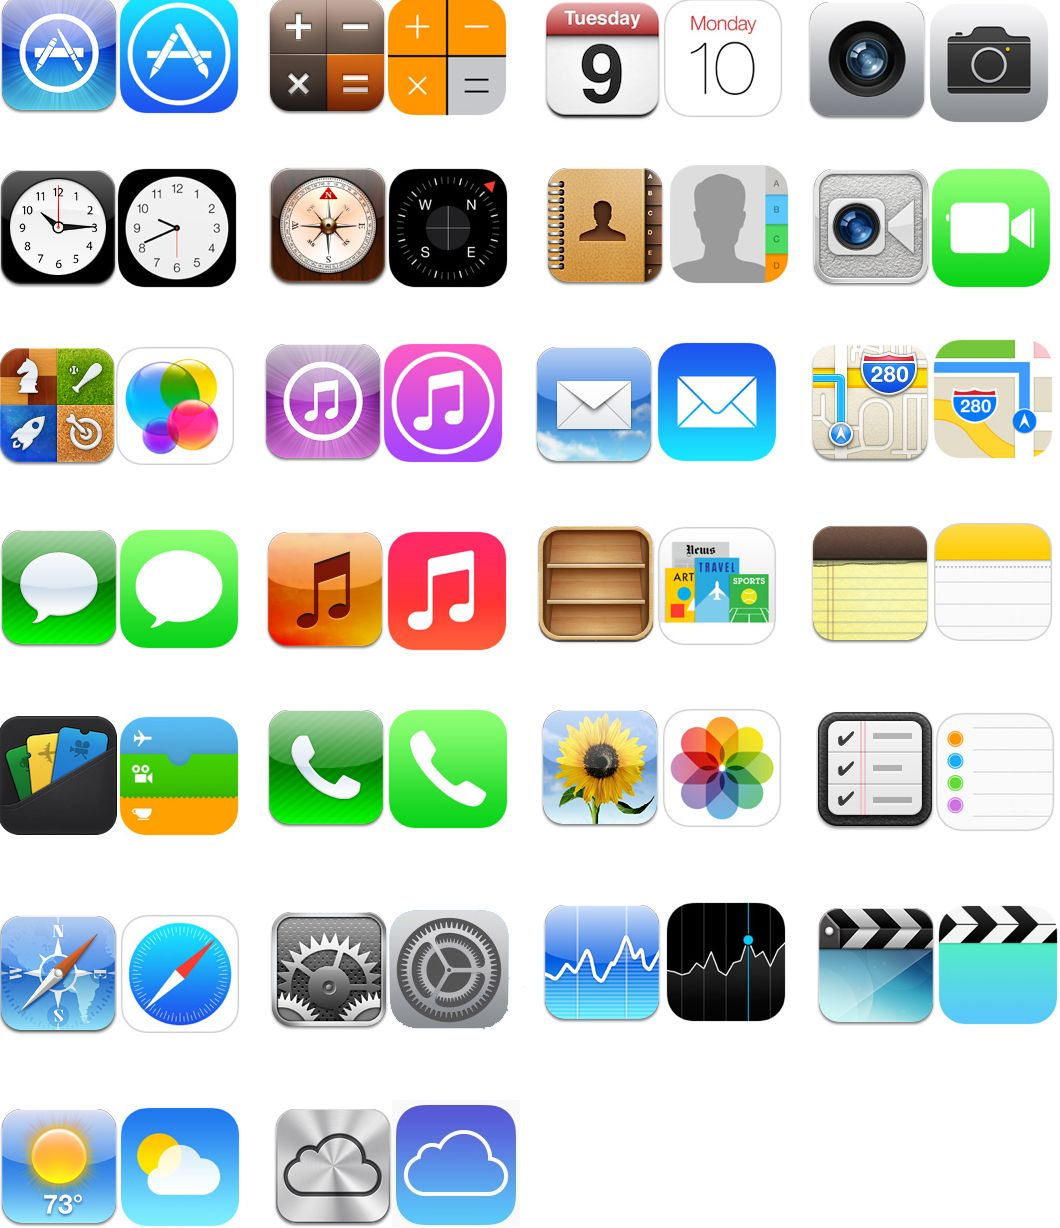 ios6 vs ios7 icons iOS 7 Vs. iOS 6 Comparing The Home